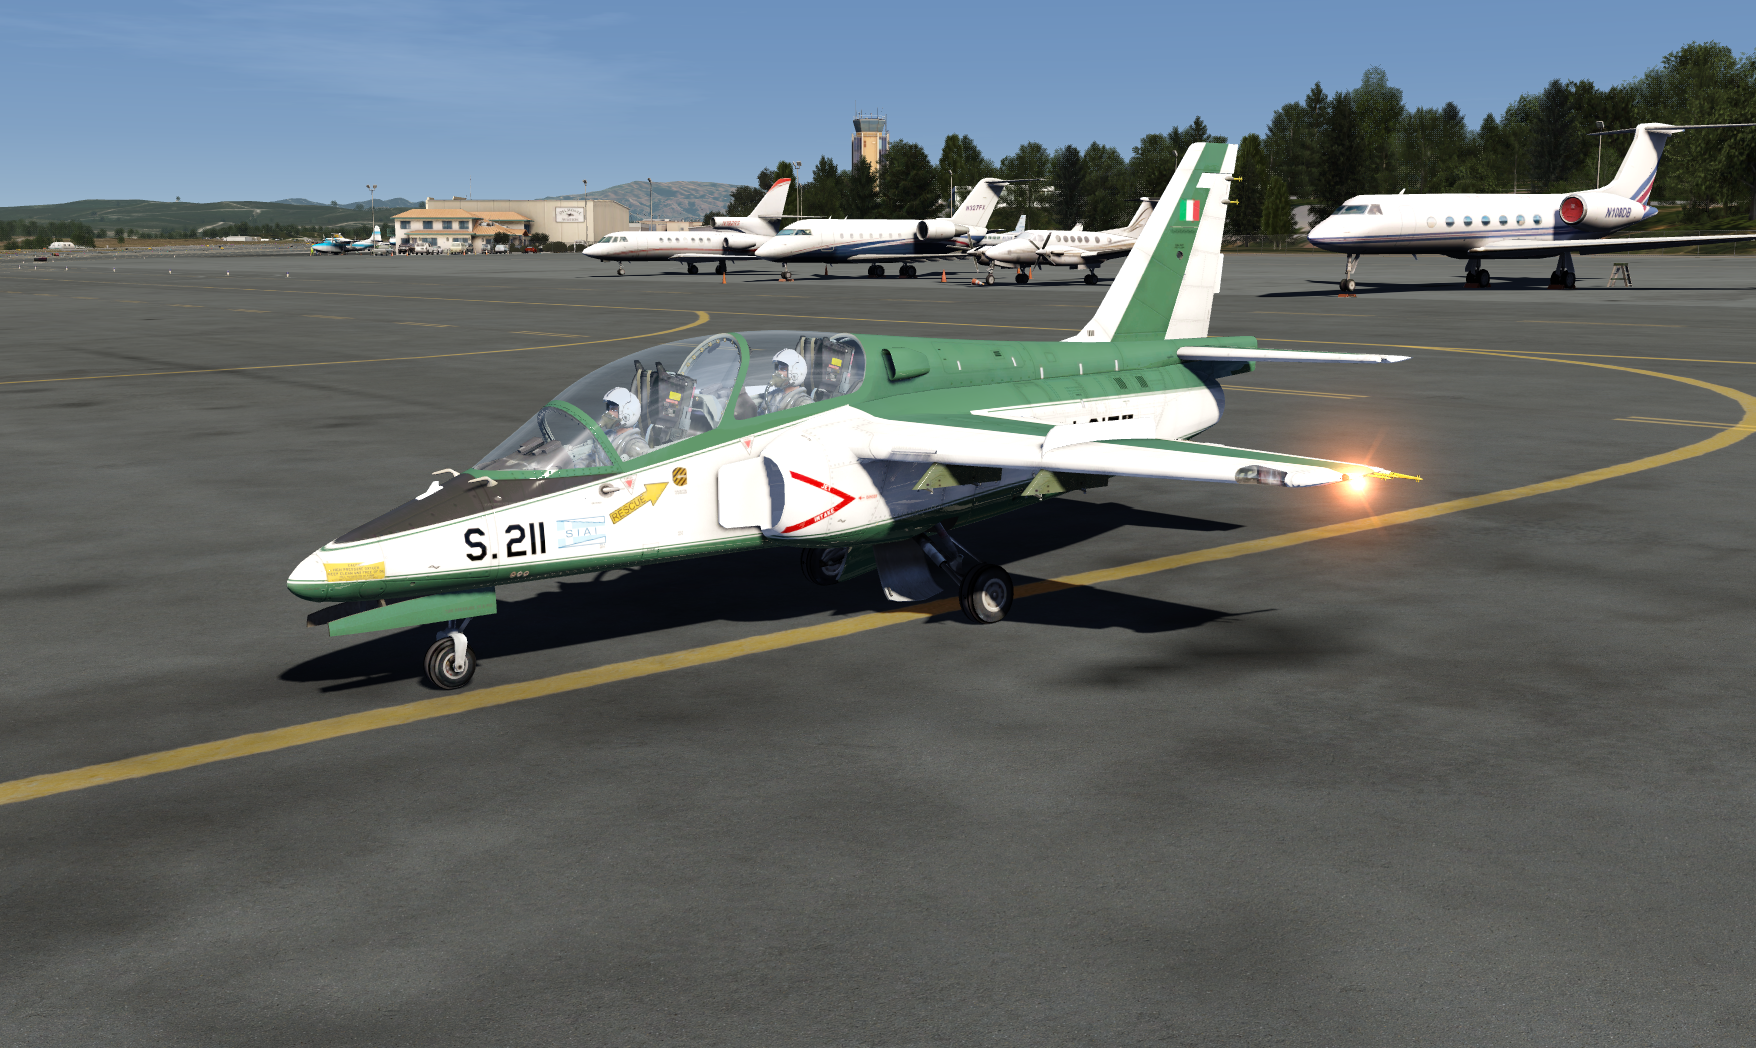 Aerofly FS 2 – Free Add-Ons Download – Aerofly-Sim de